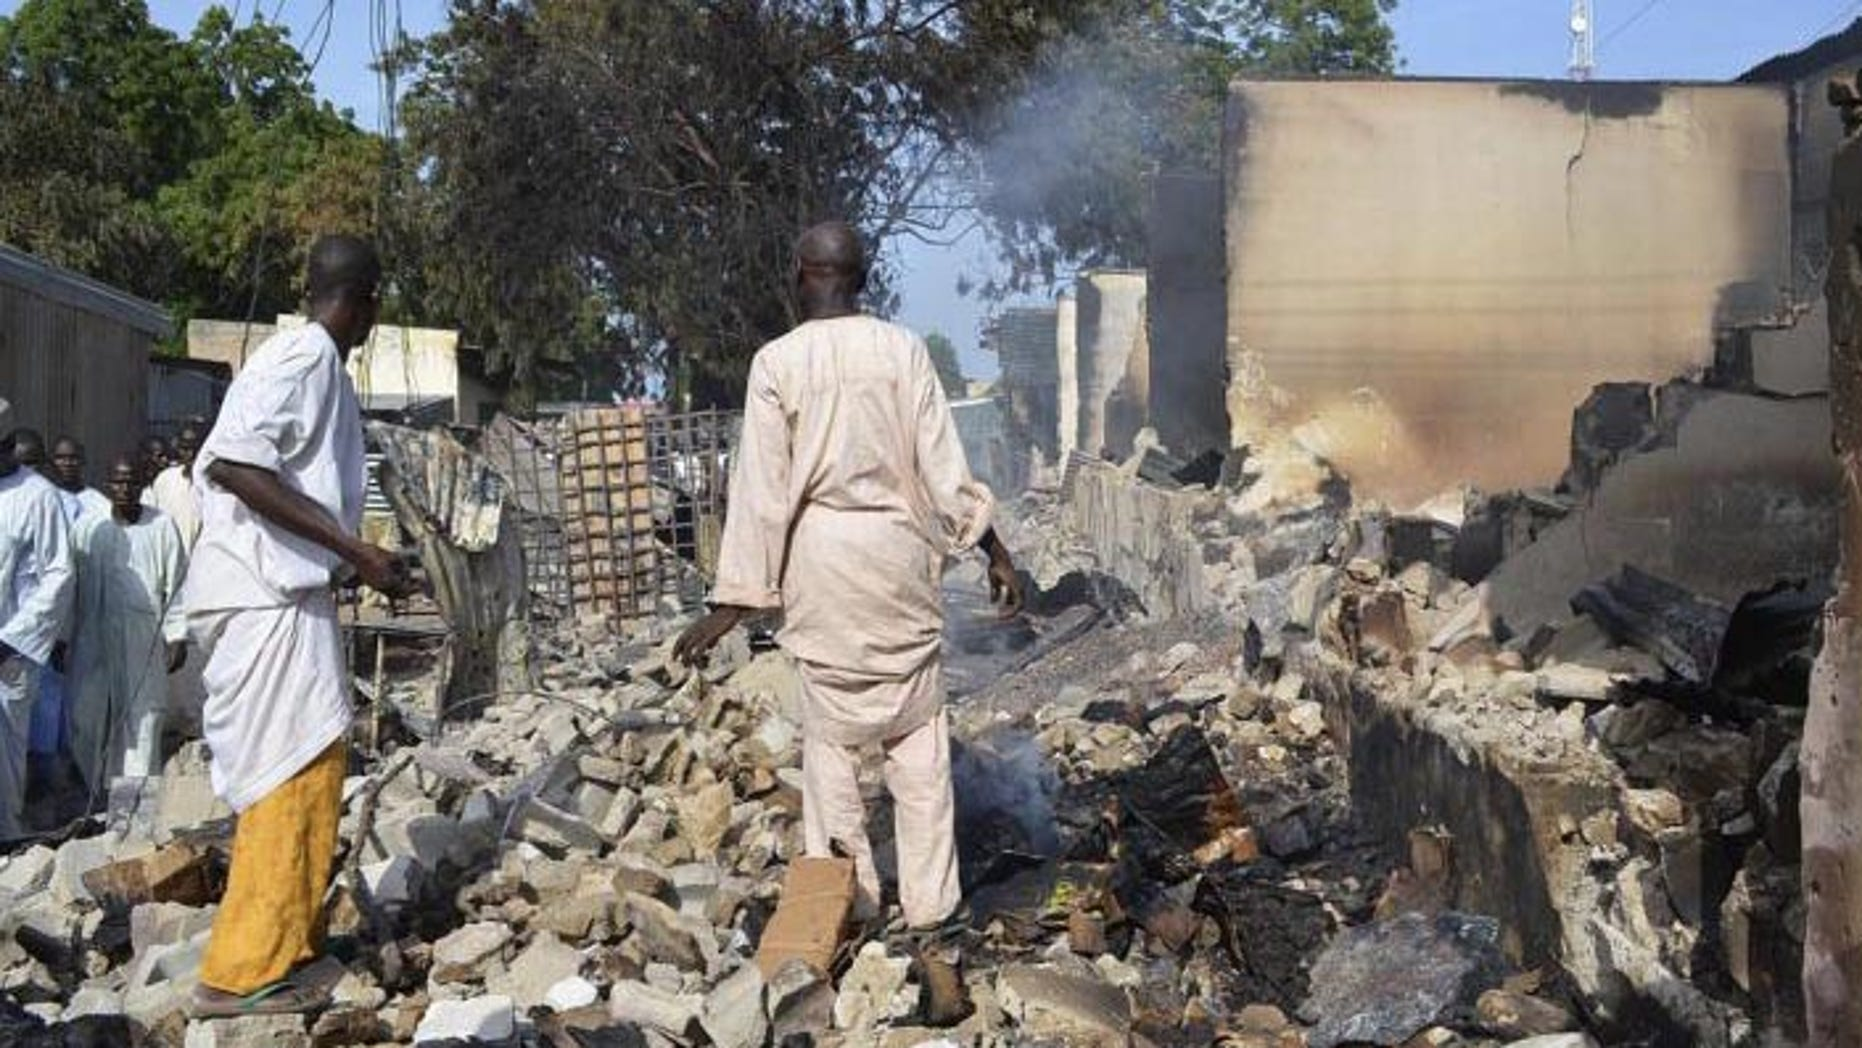 Residents watch as two men walk amidst rubble after Boko Haram militants raided the town of Benisheik in Nigeria. (Reuters)